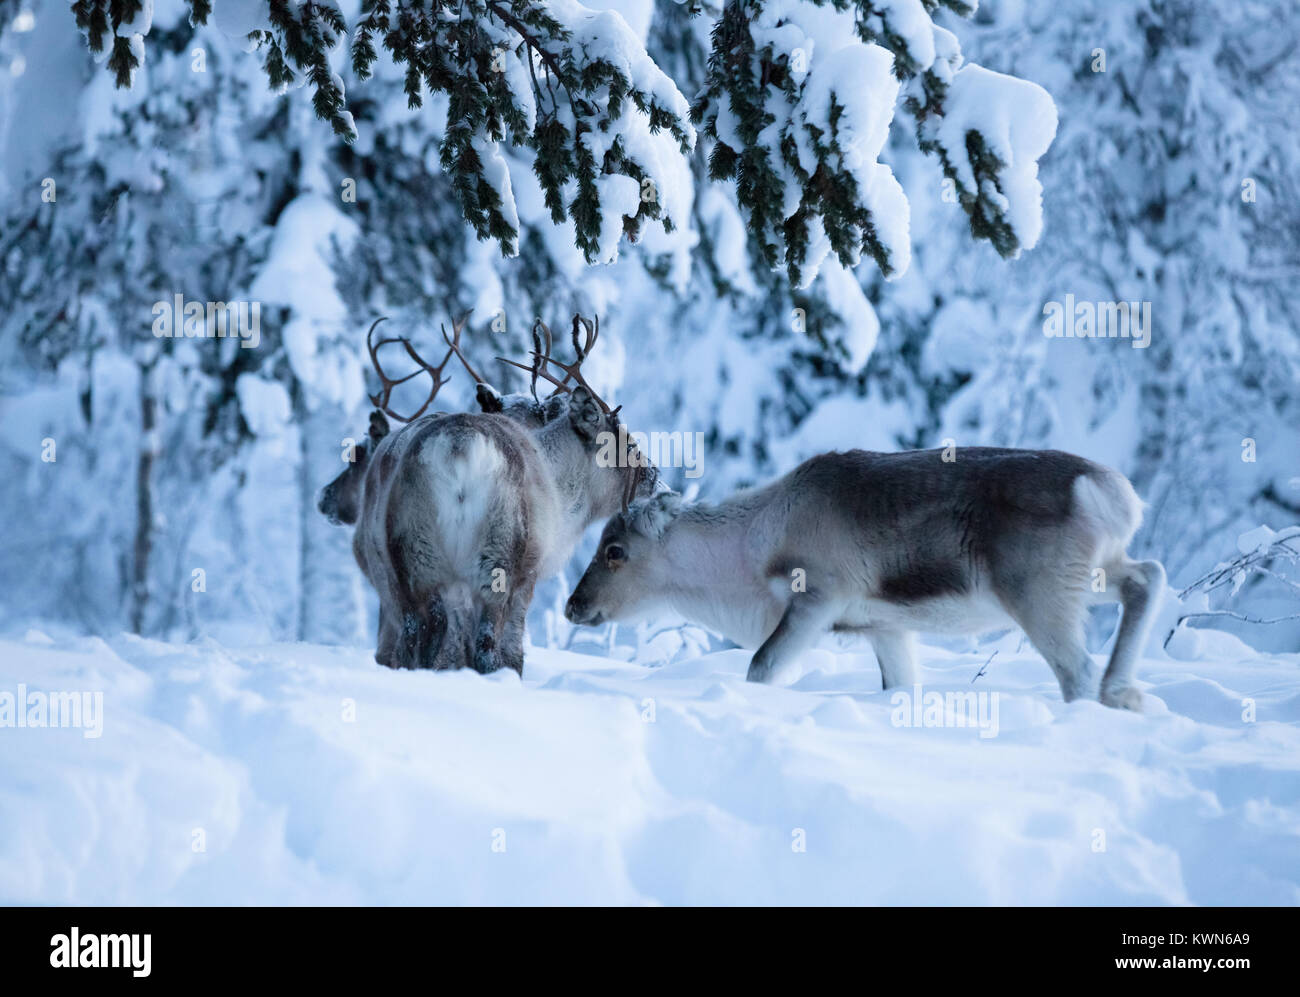 Reindeer in search for bait beneath the snow. Swedish Lapland. - Stock Image